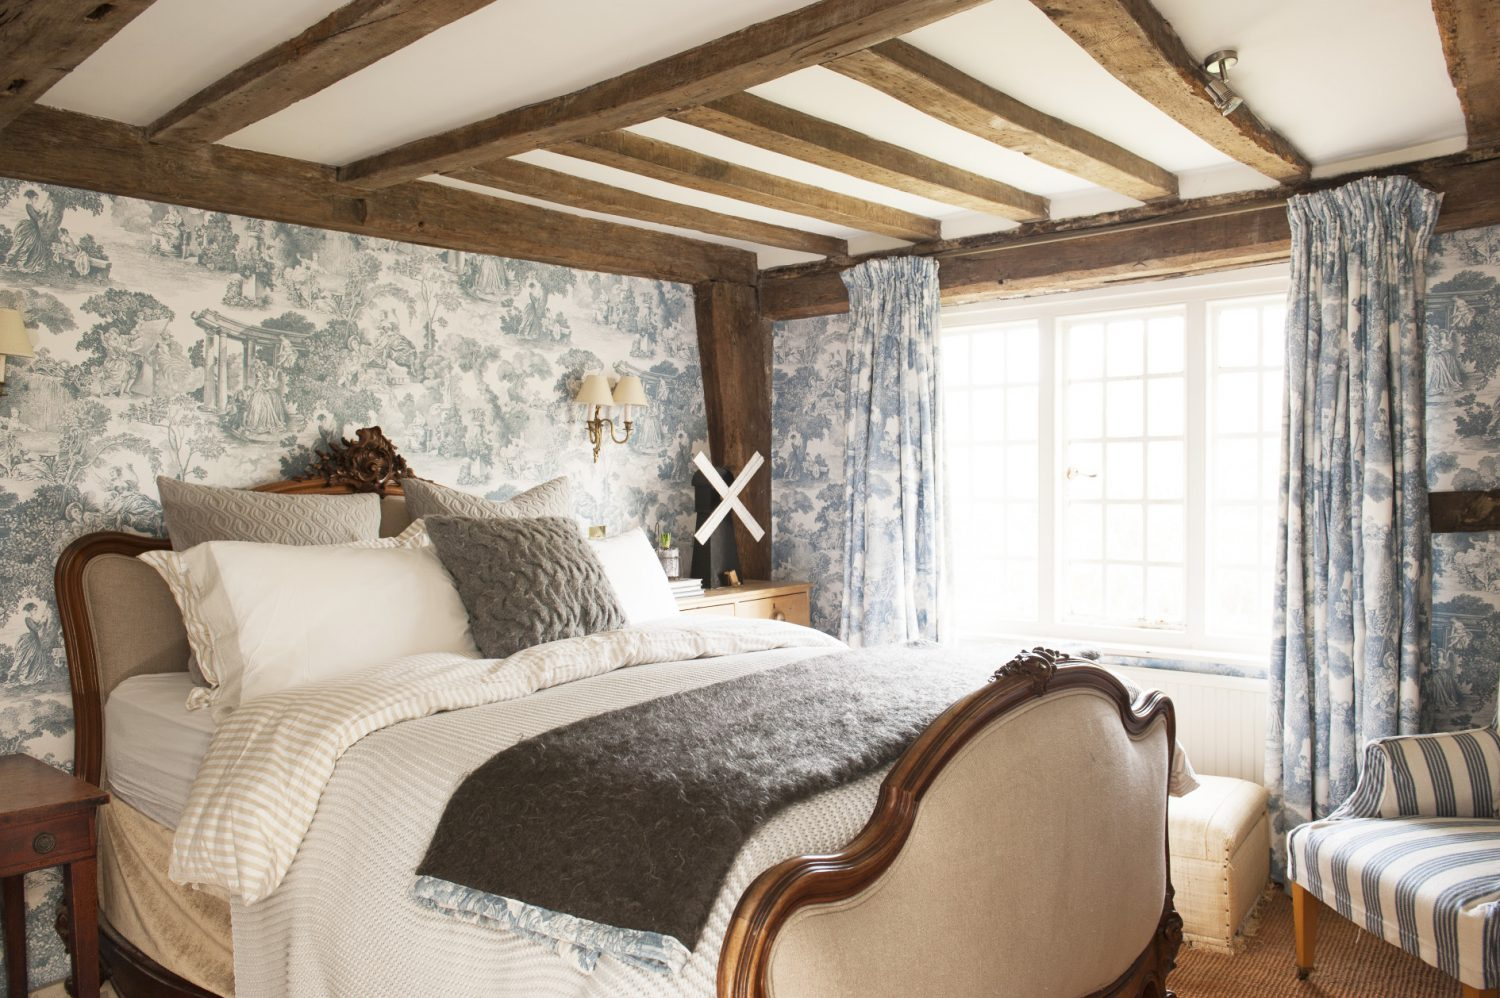 The first floor is home to a very pretty spare room featuring a French-style upholstered bed and blue Toile de Jouy wallpaper, curtains and trim